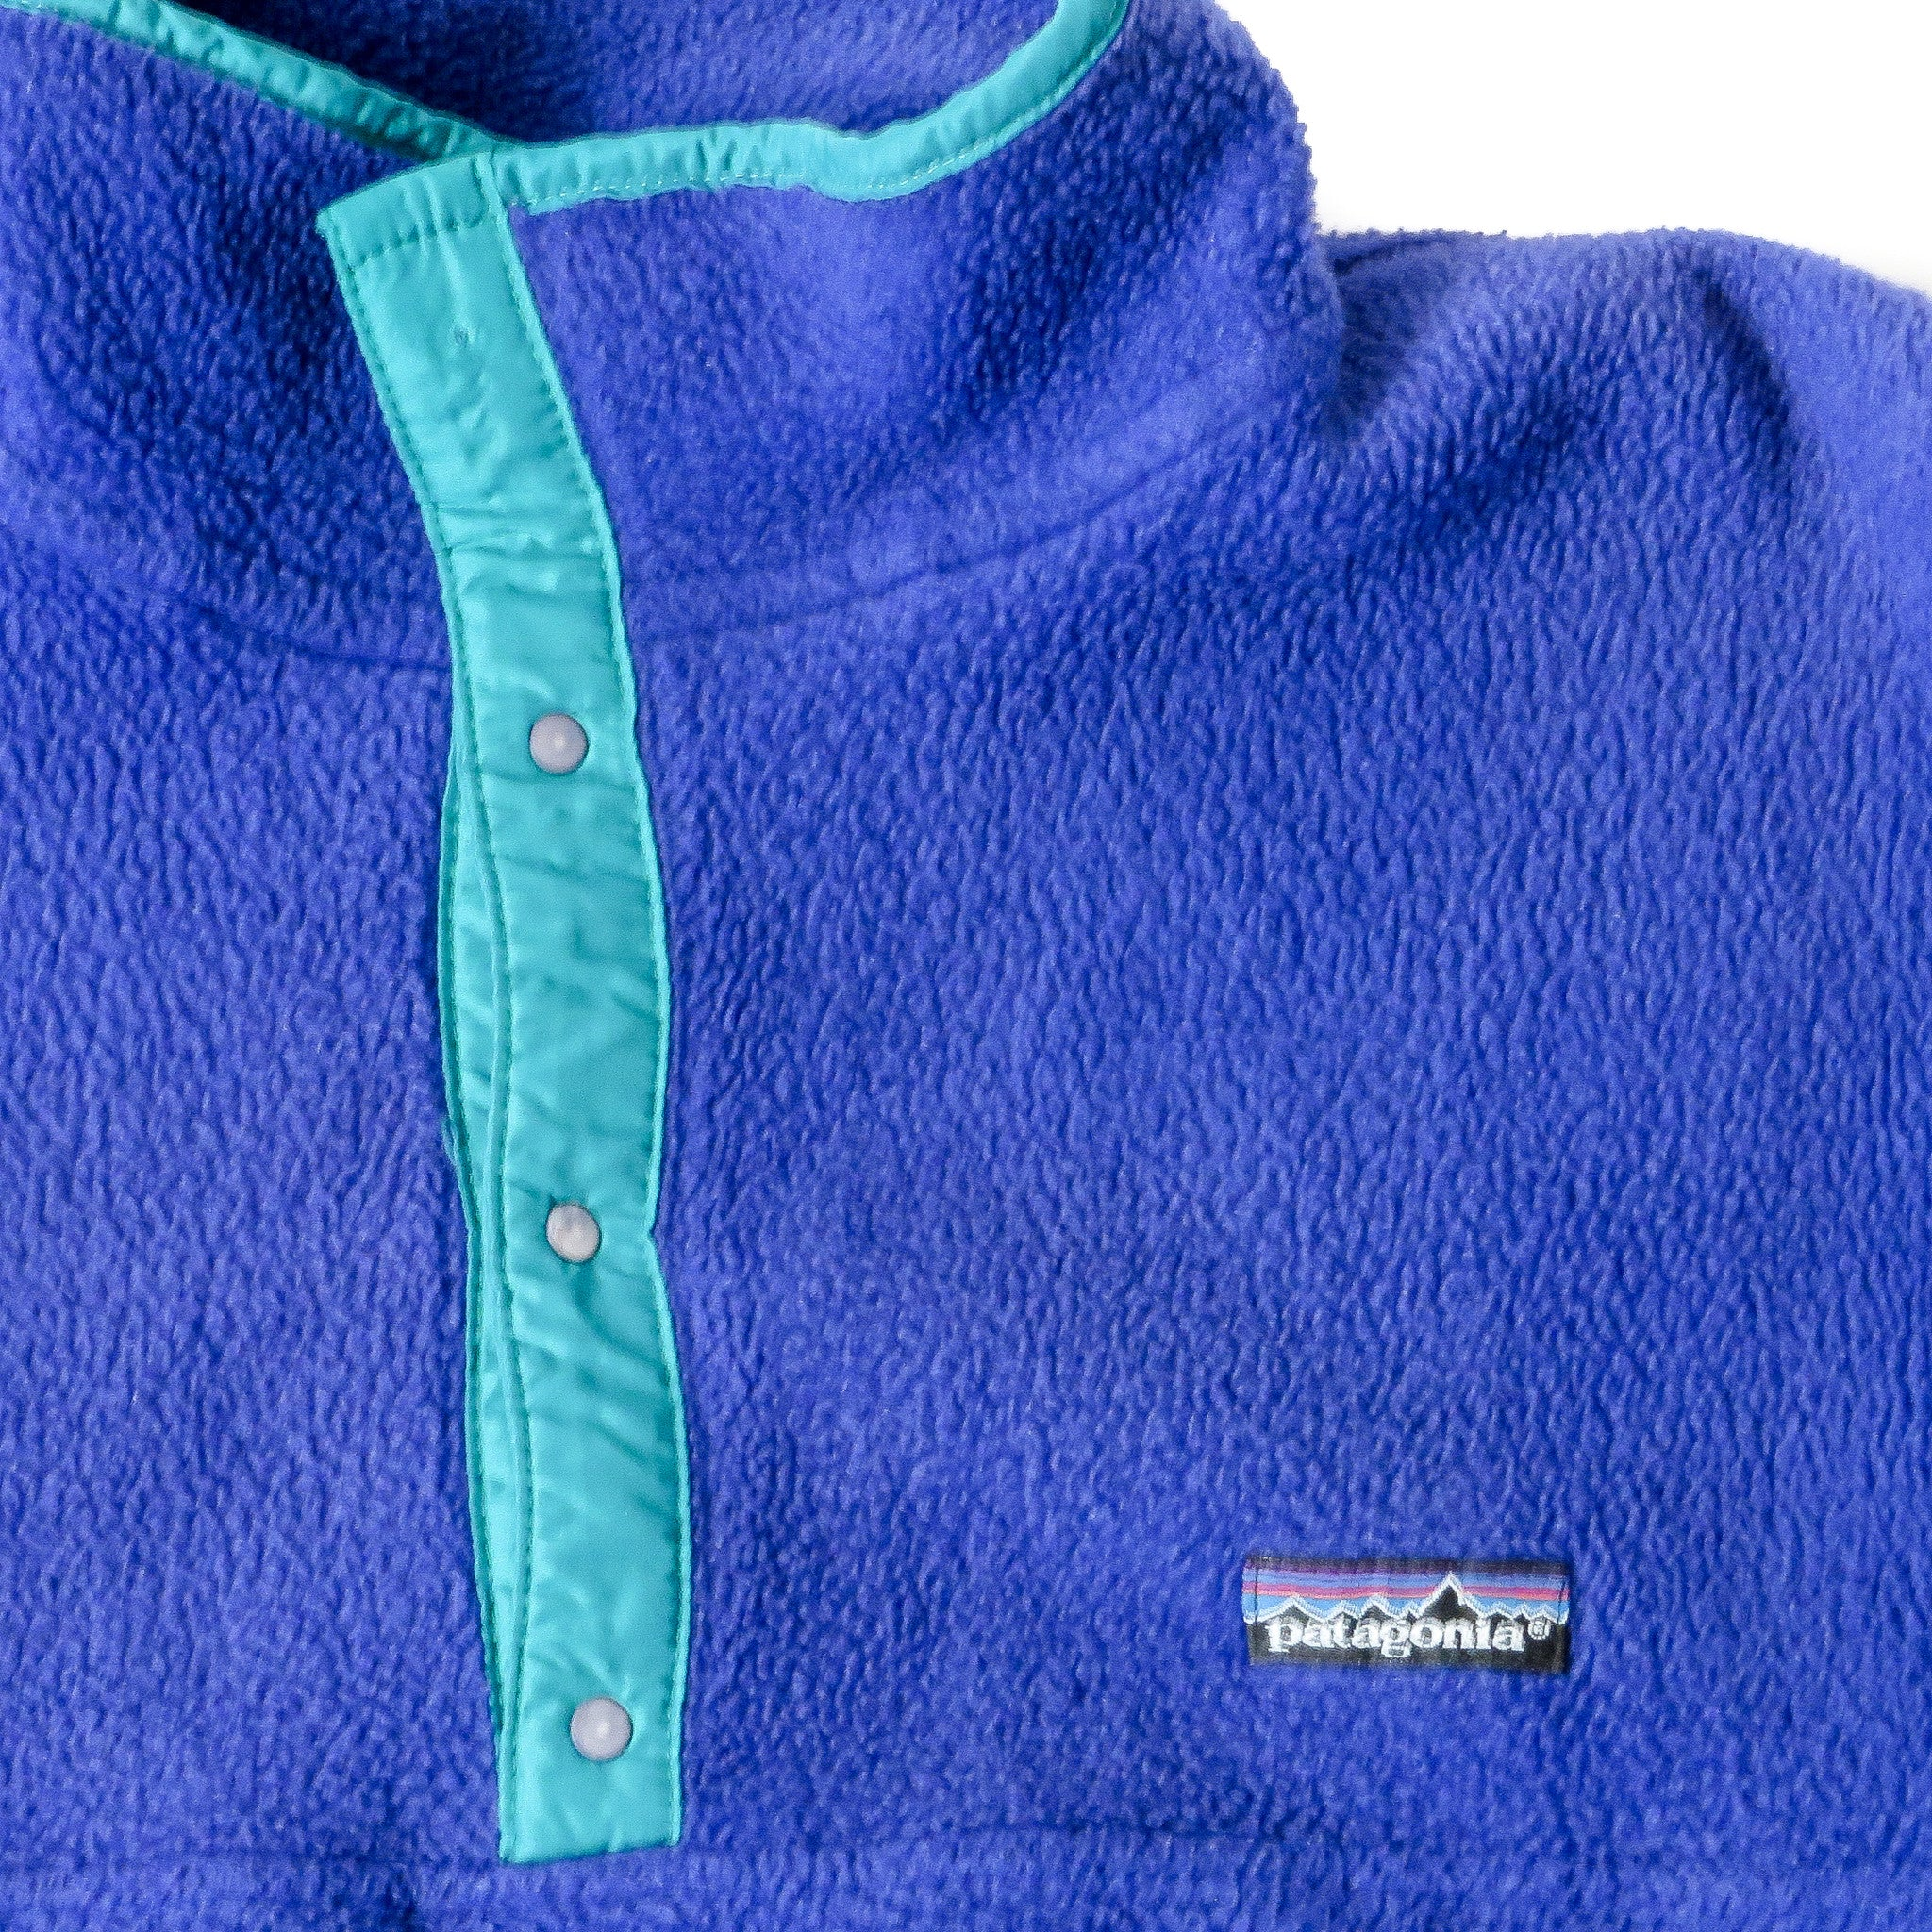 Vintage Patagonia Synchilla Snap-T Fleece Pullover Jacket Sz L